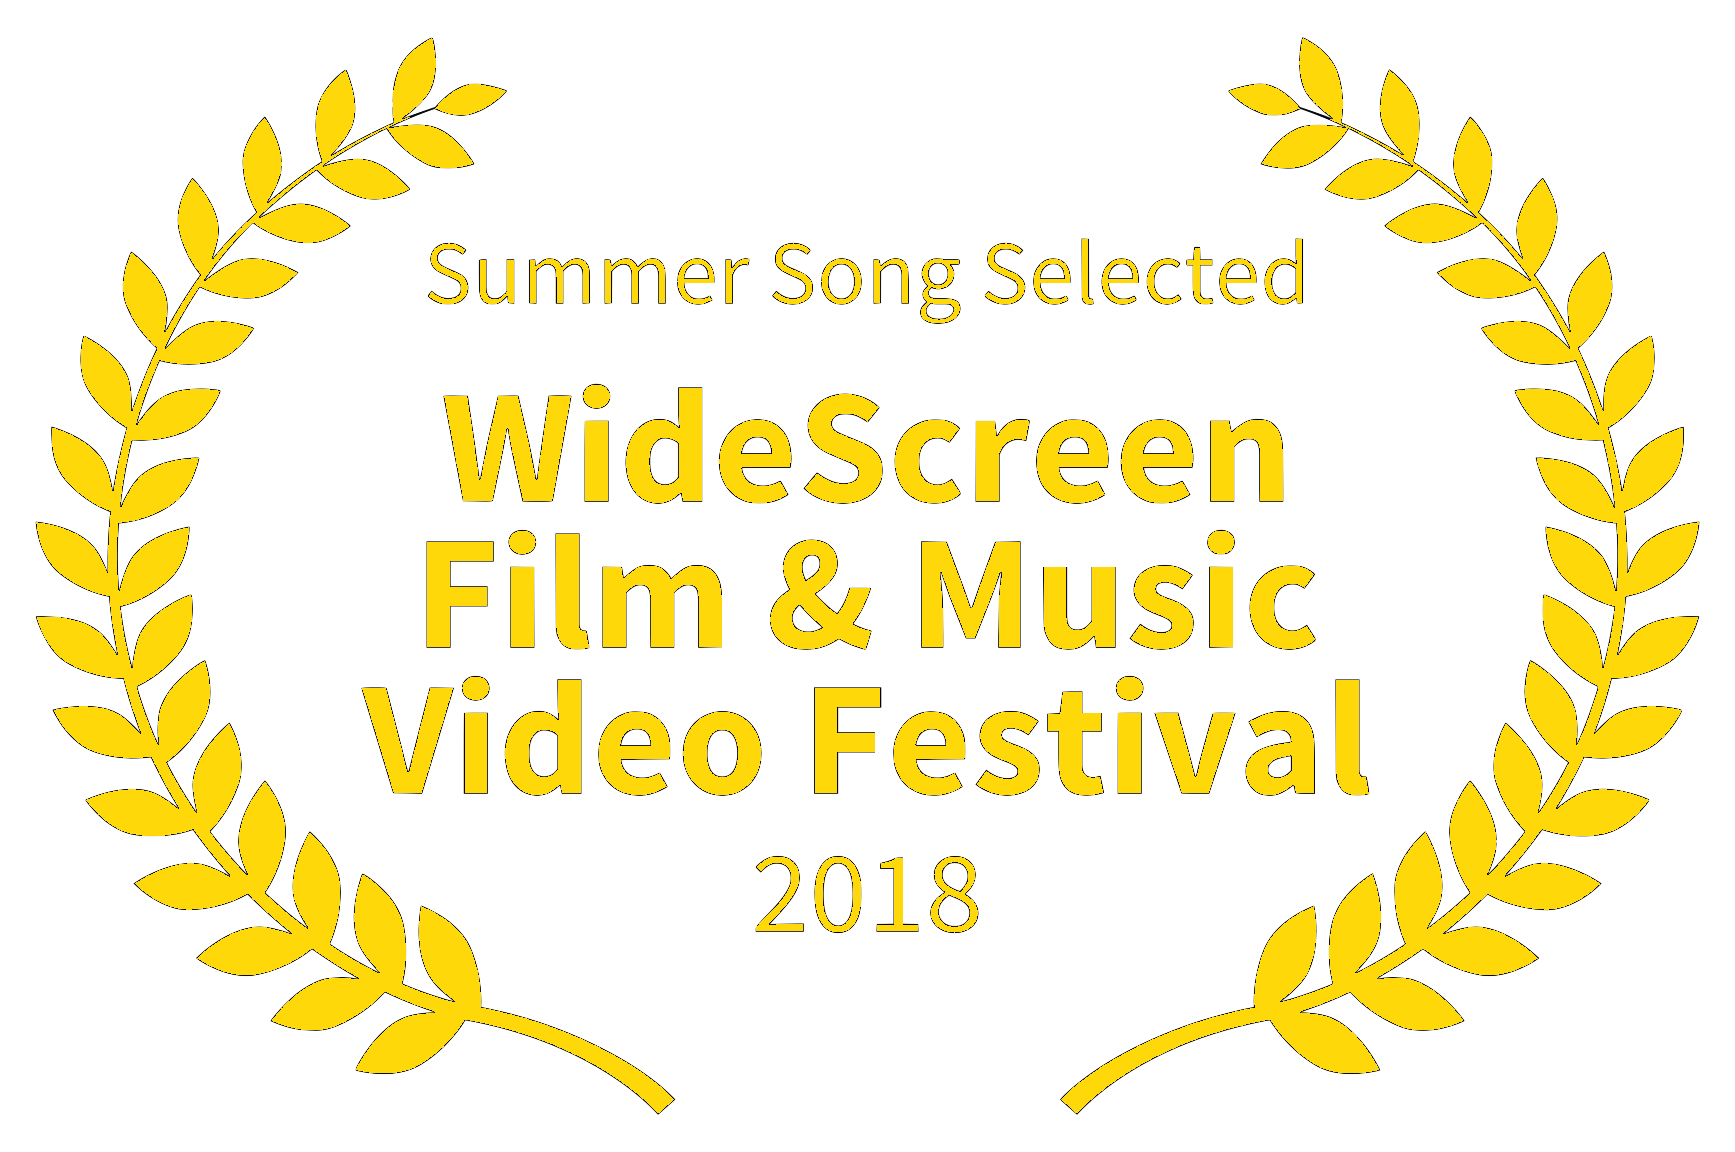 Summer Song Selected Yellow - WideScreen Film  Music Video Festival - 2018.png